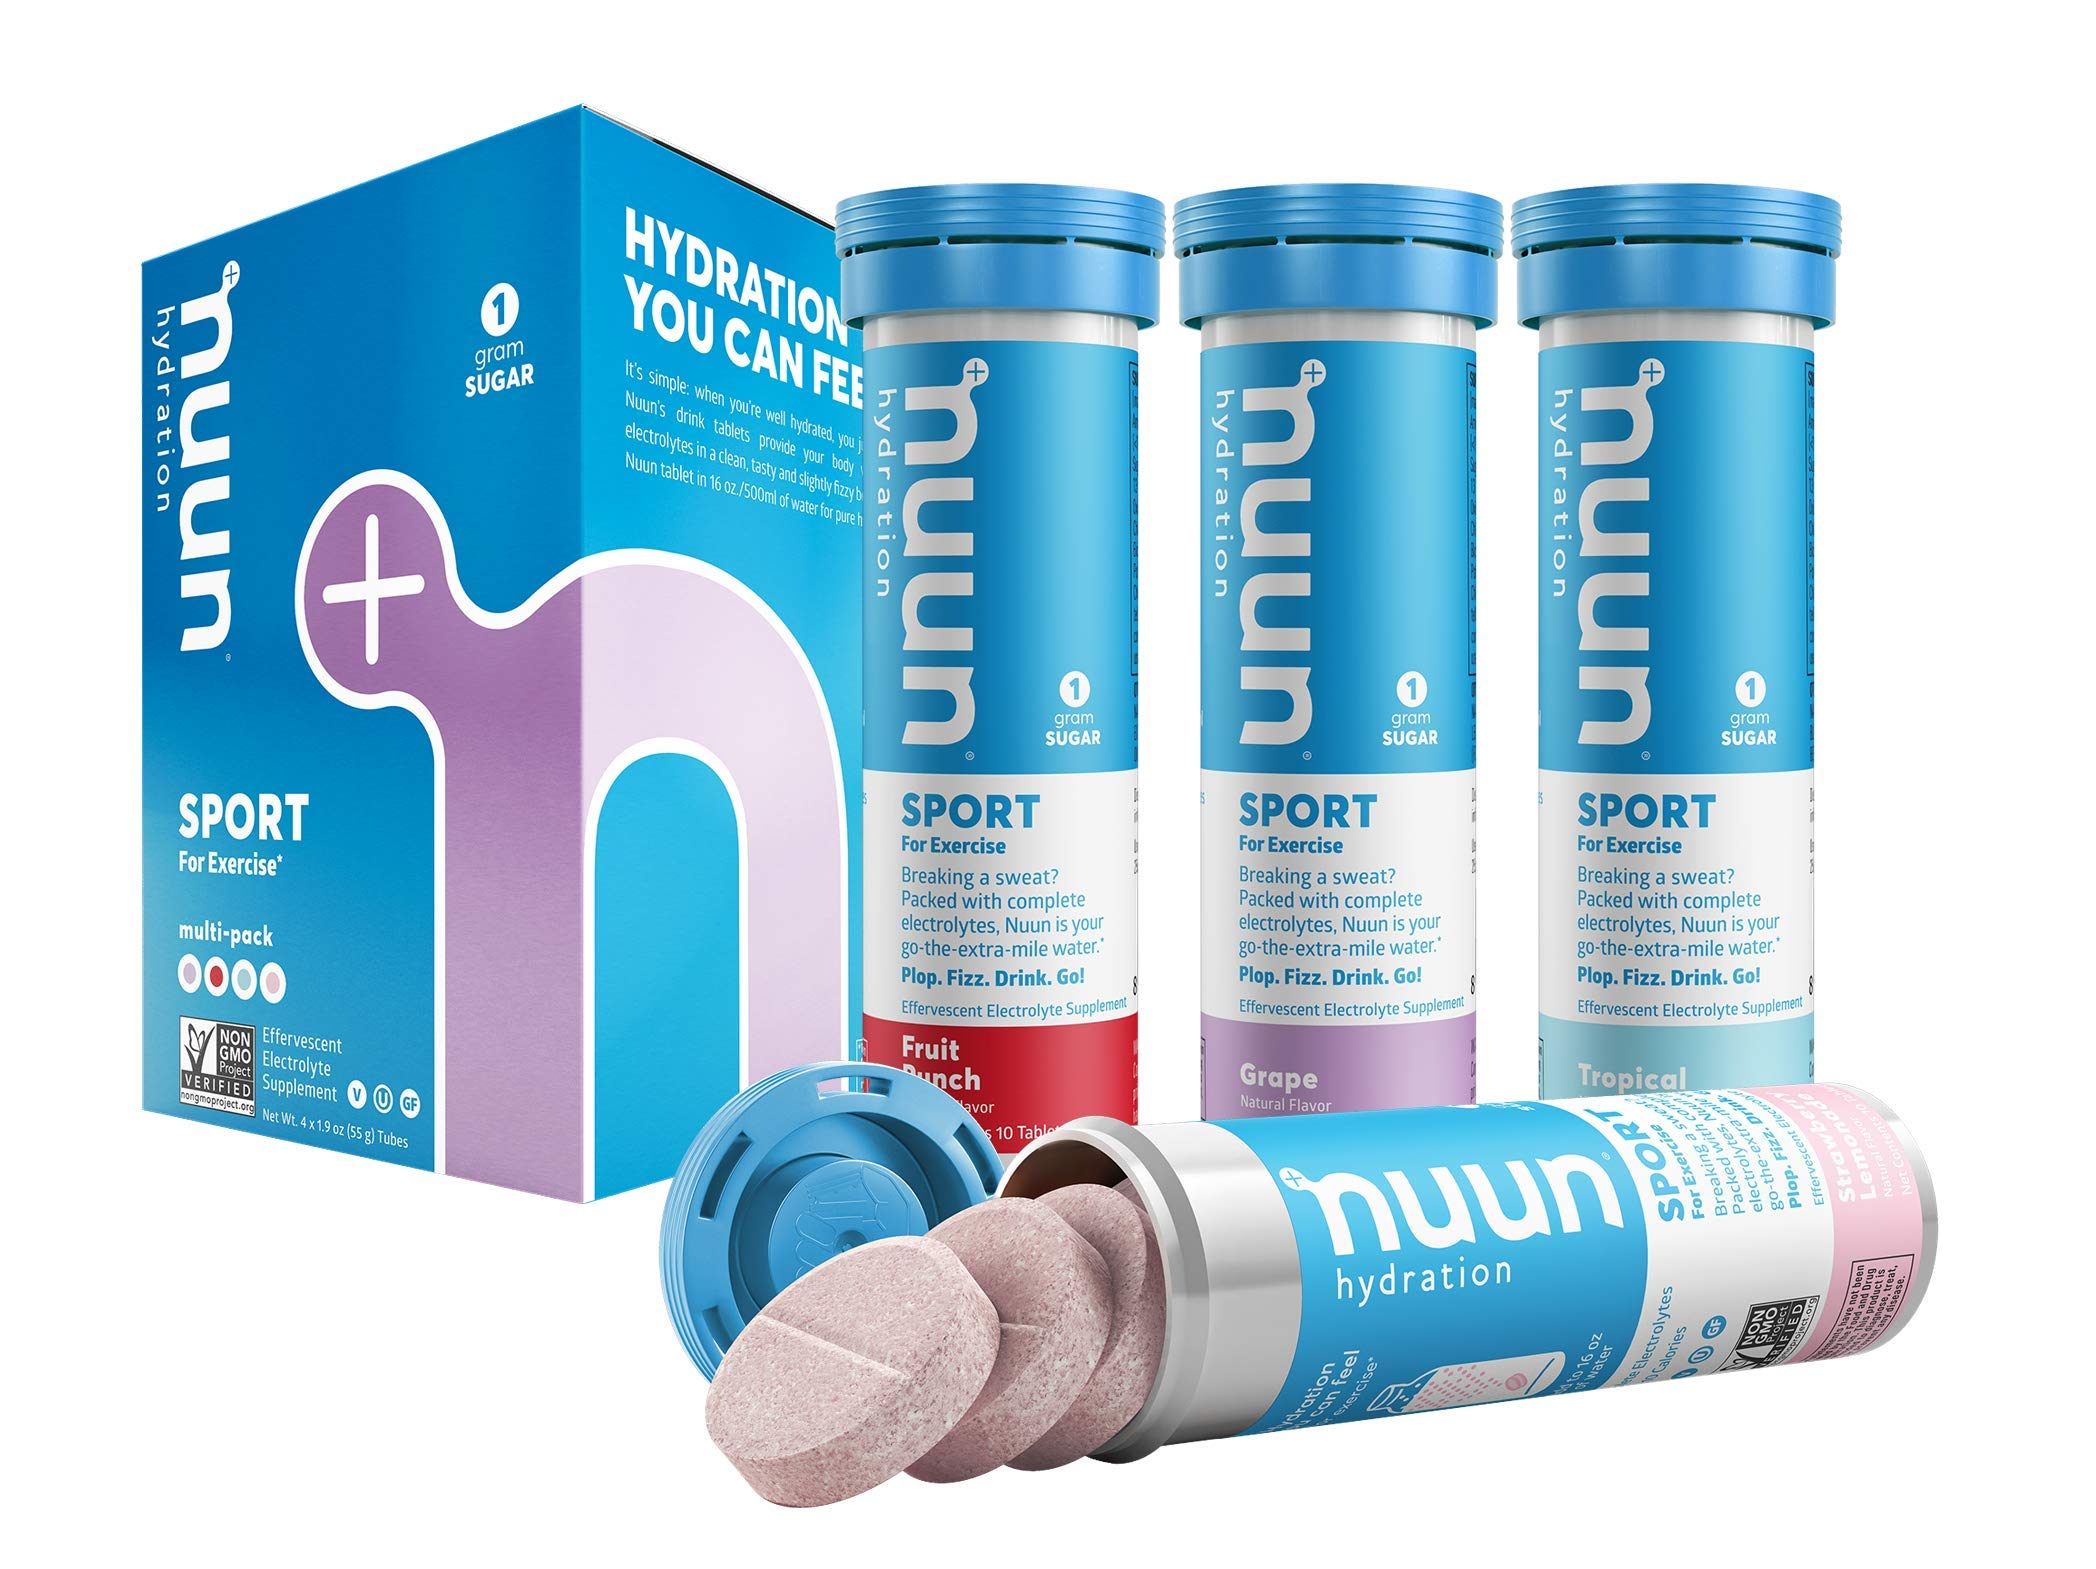 Nuun Sport: Electrolyte-Rich Sports Drink Tablets, Juice Box Mixed Flavor Pack, Box of 4 Tubes (40 servings), Sports Drink for Replenishment of Essential Electrolytes Lost Through Sweat